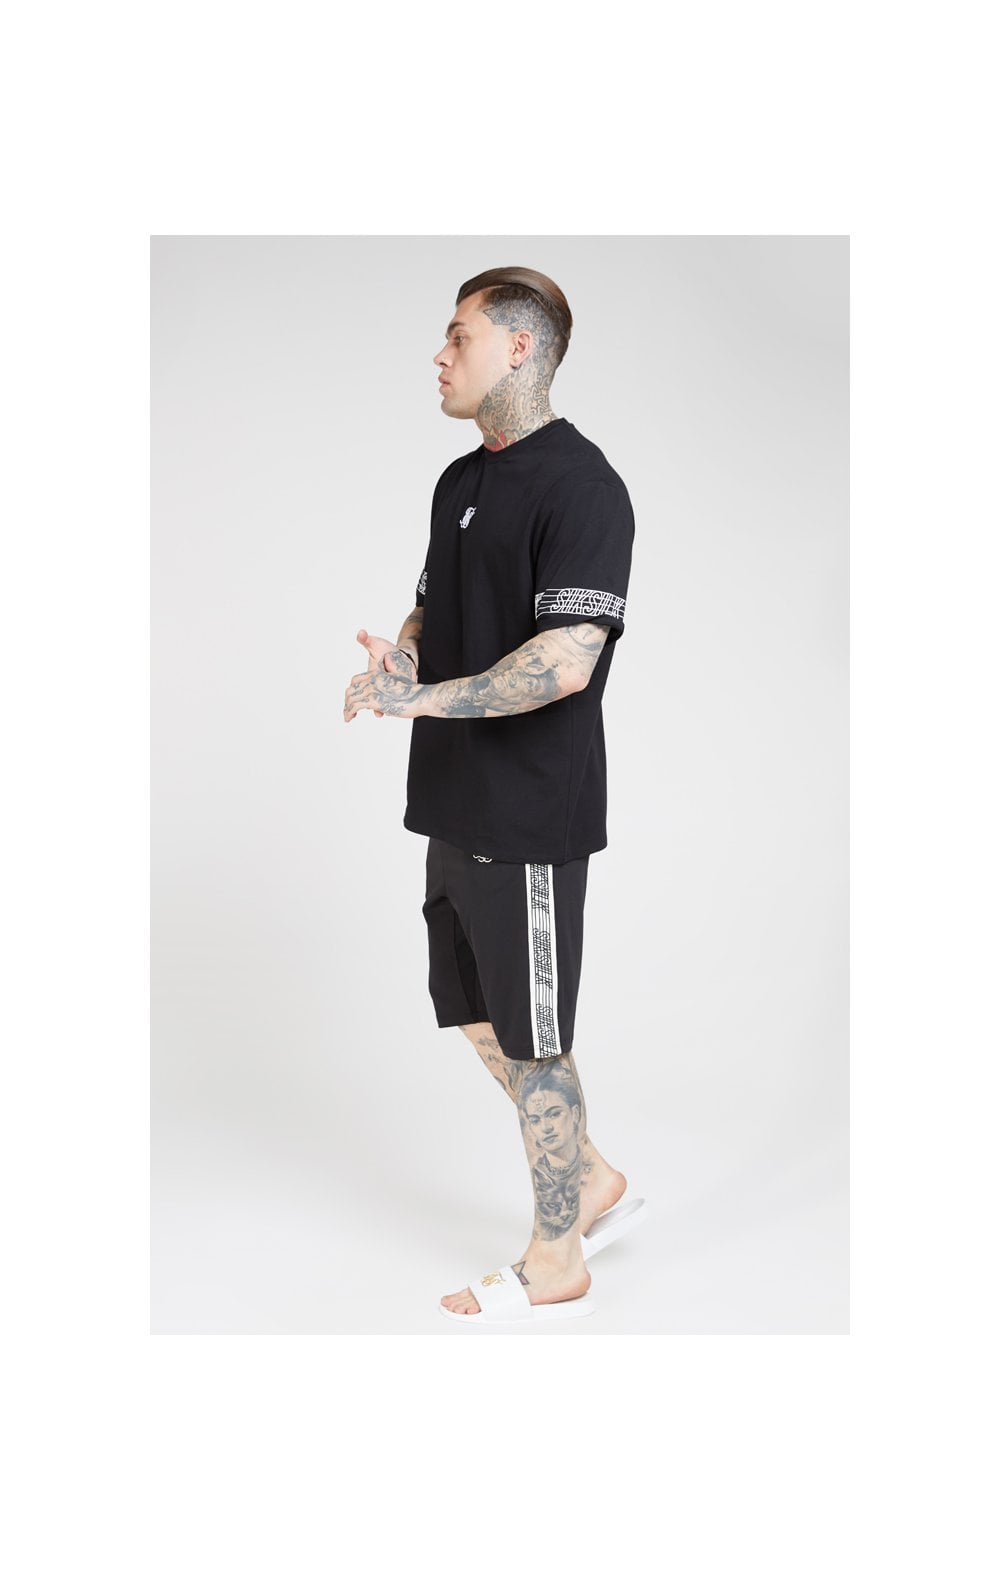 SikSilk S/S Essential Runner Oversized Tee – Black (5)